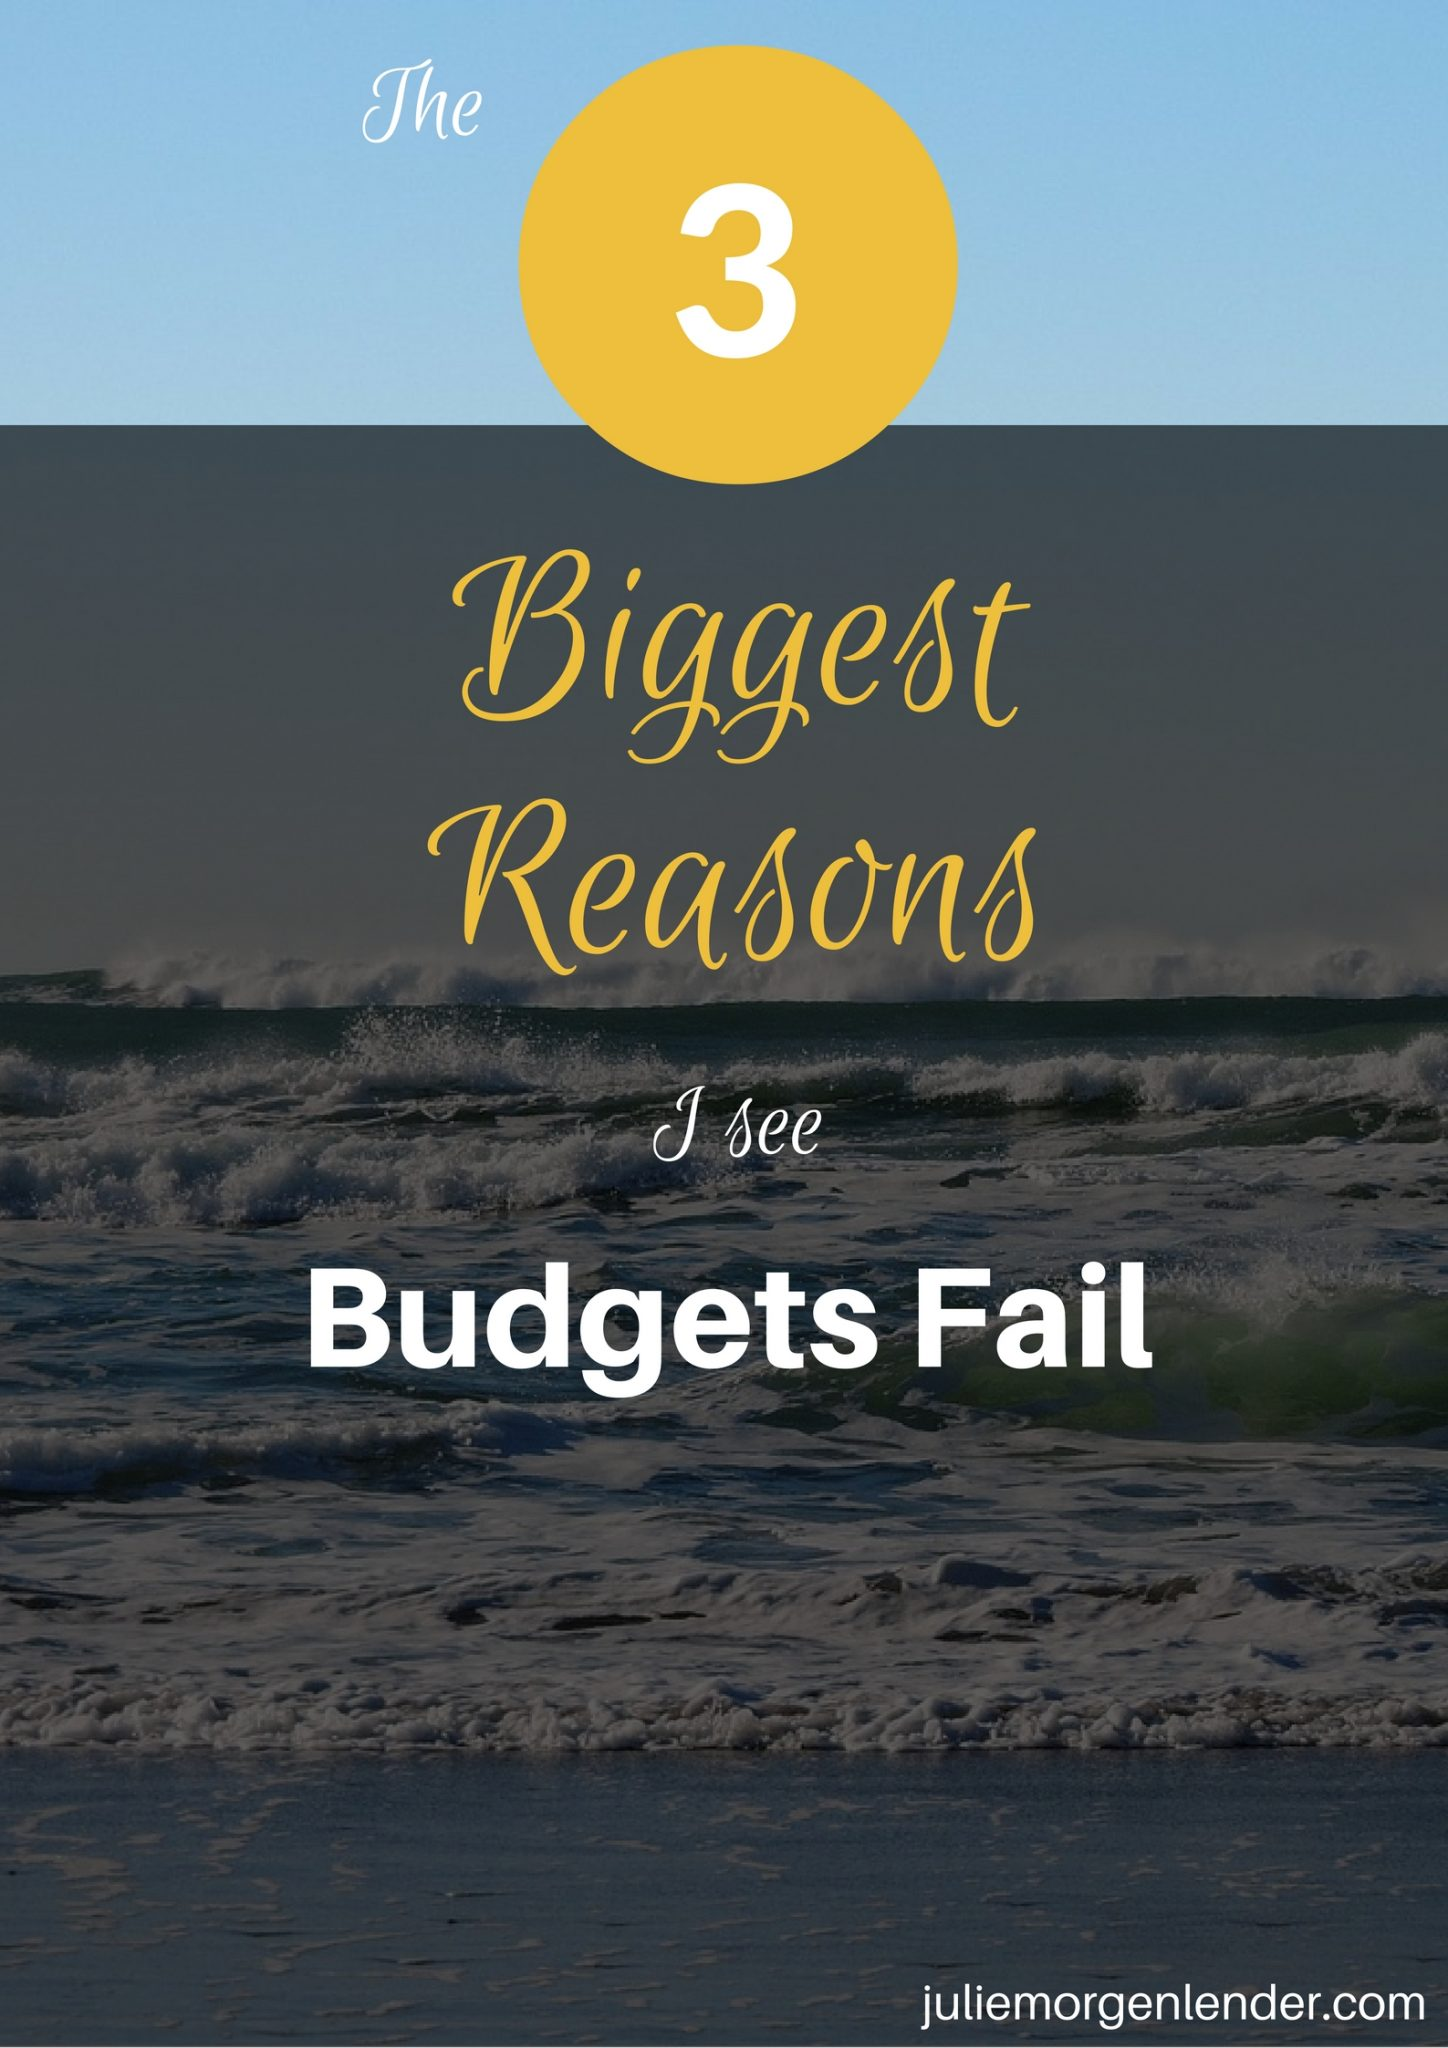 The 3 biggest reasons I see budgets fail